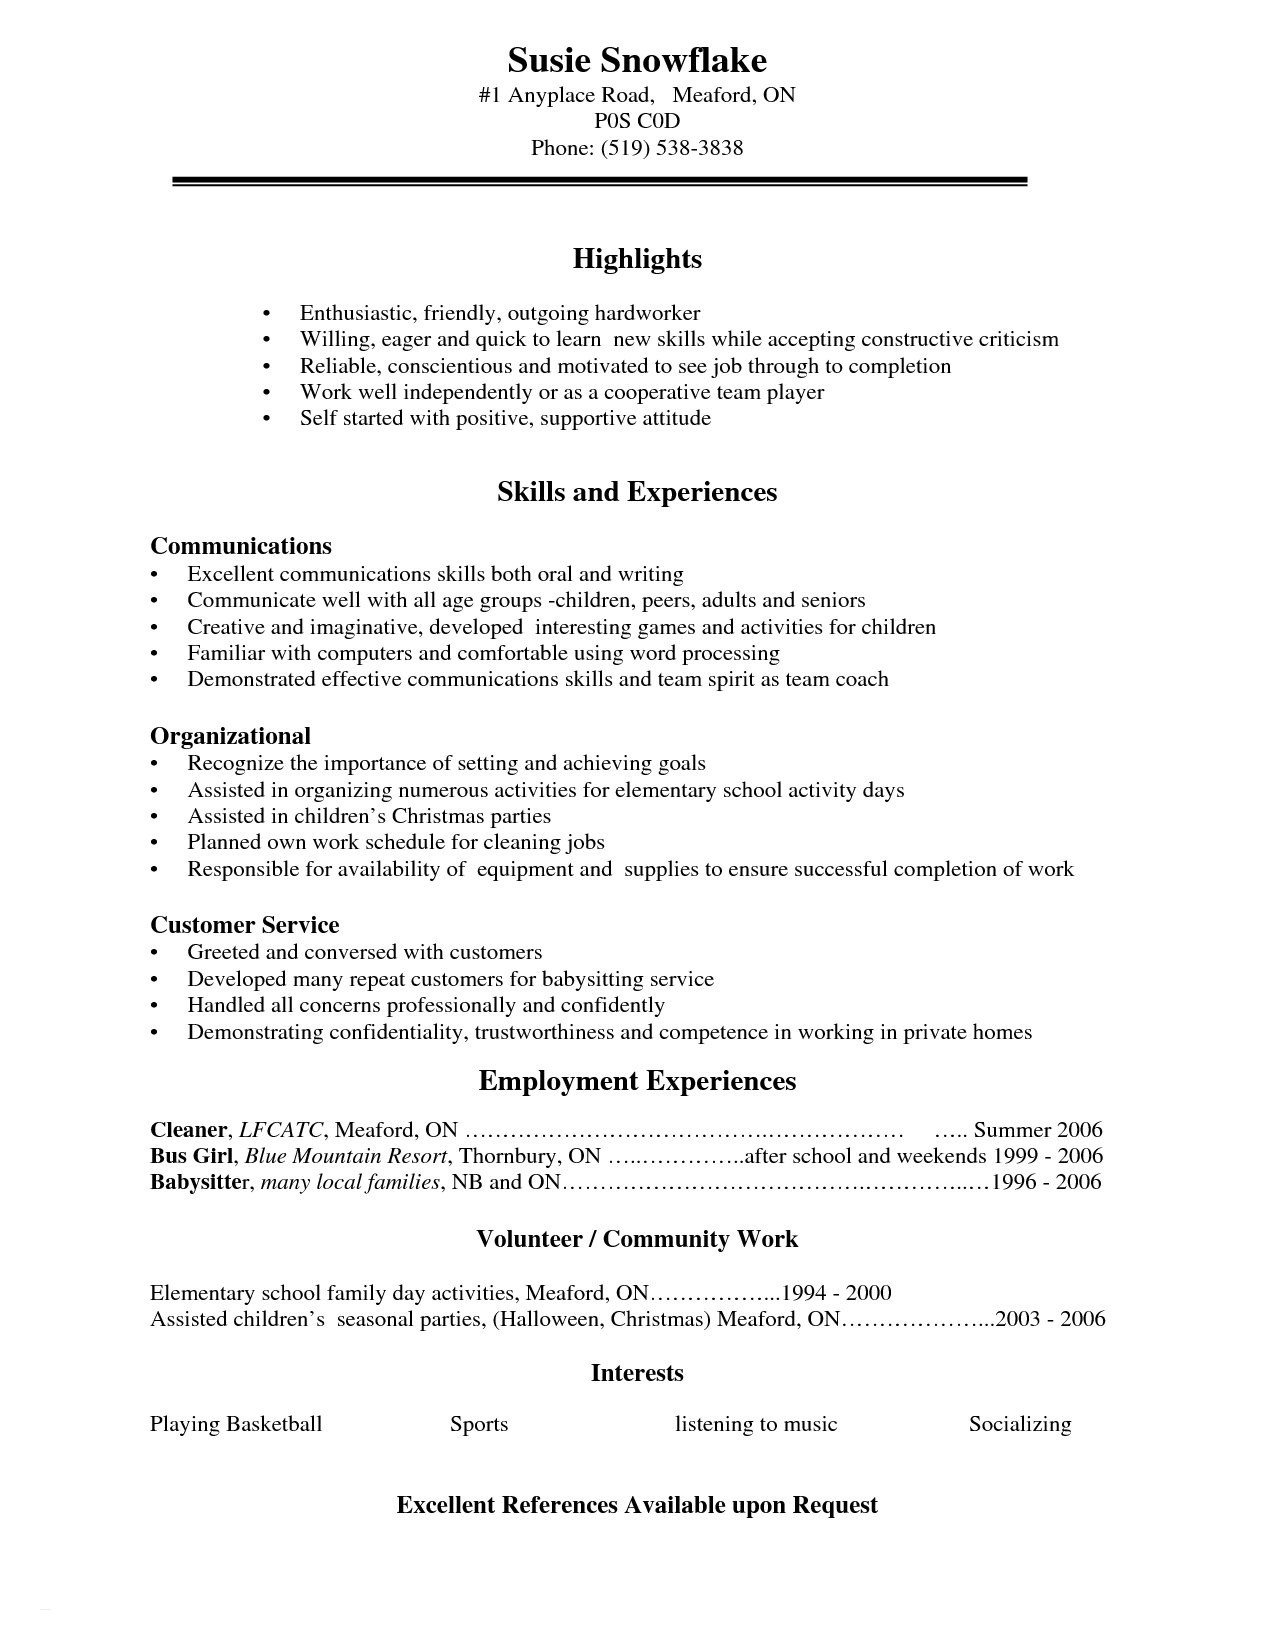 High School Students Resume - Resume for High School Student Elegant What Makes A Good Resume